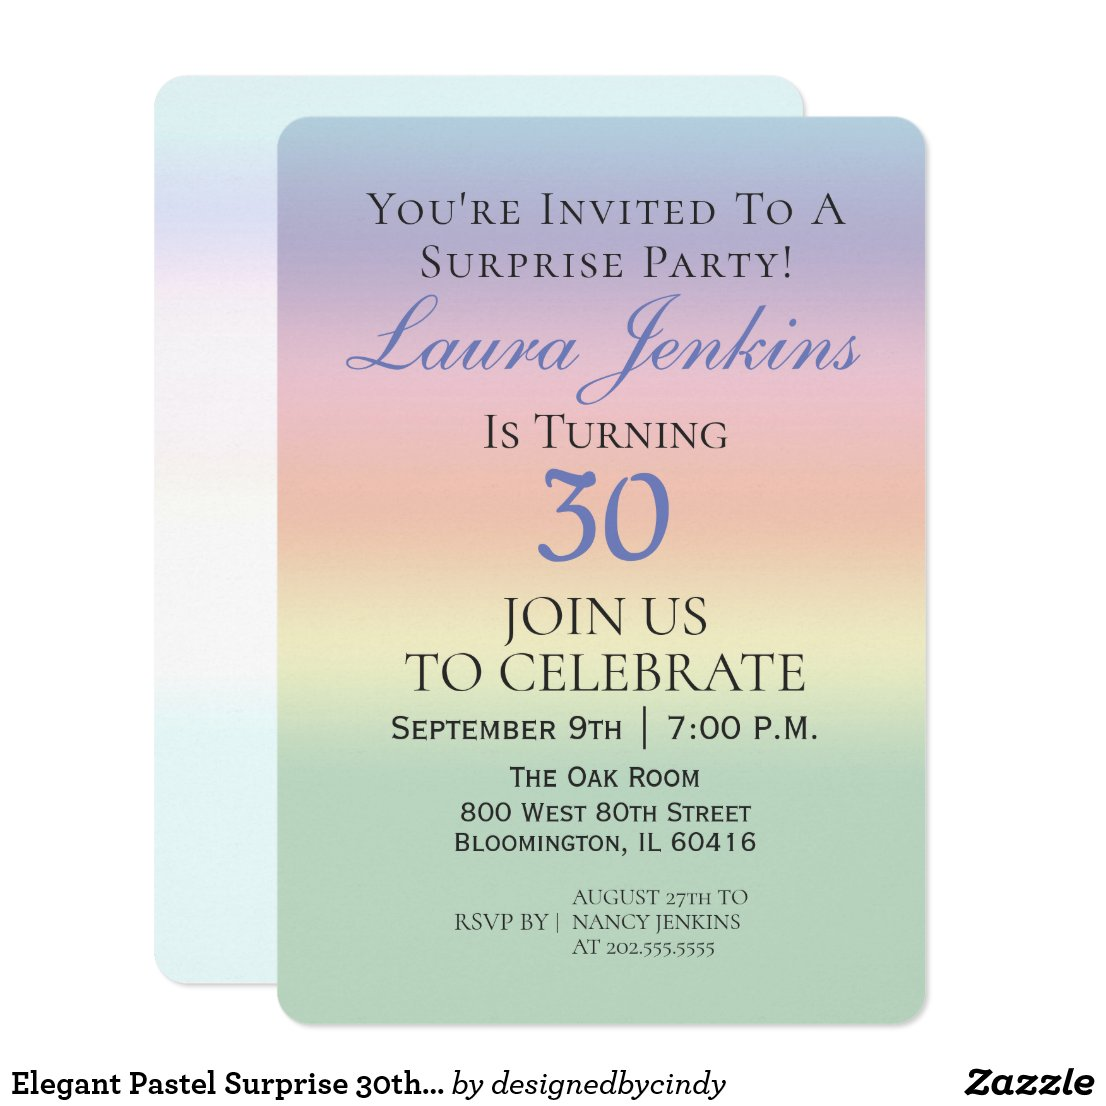 Elegant Pastel Surprise 30th Birthday Party Invitation